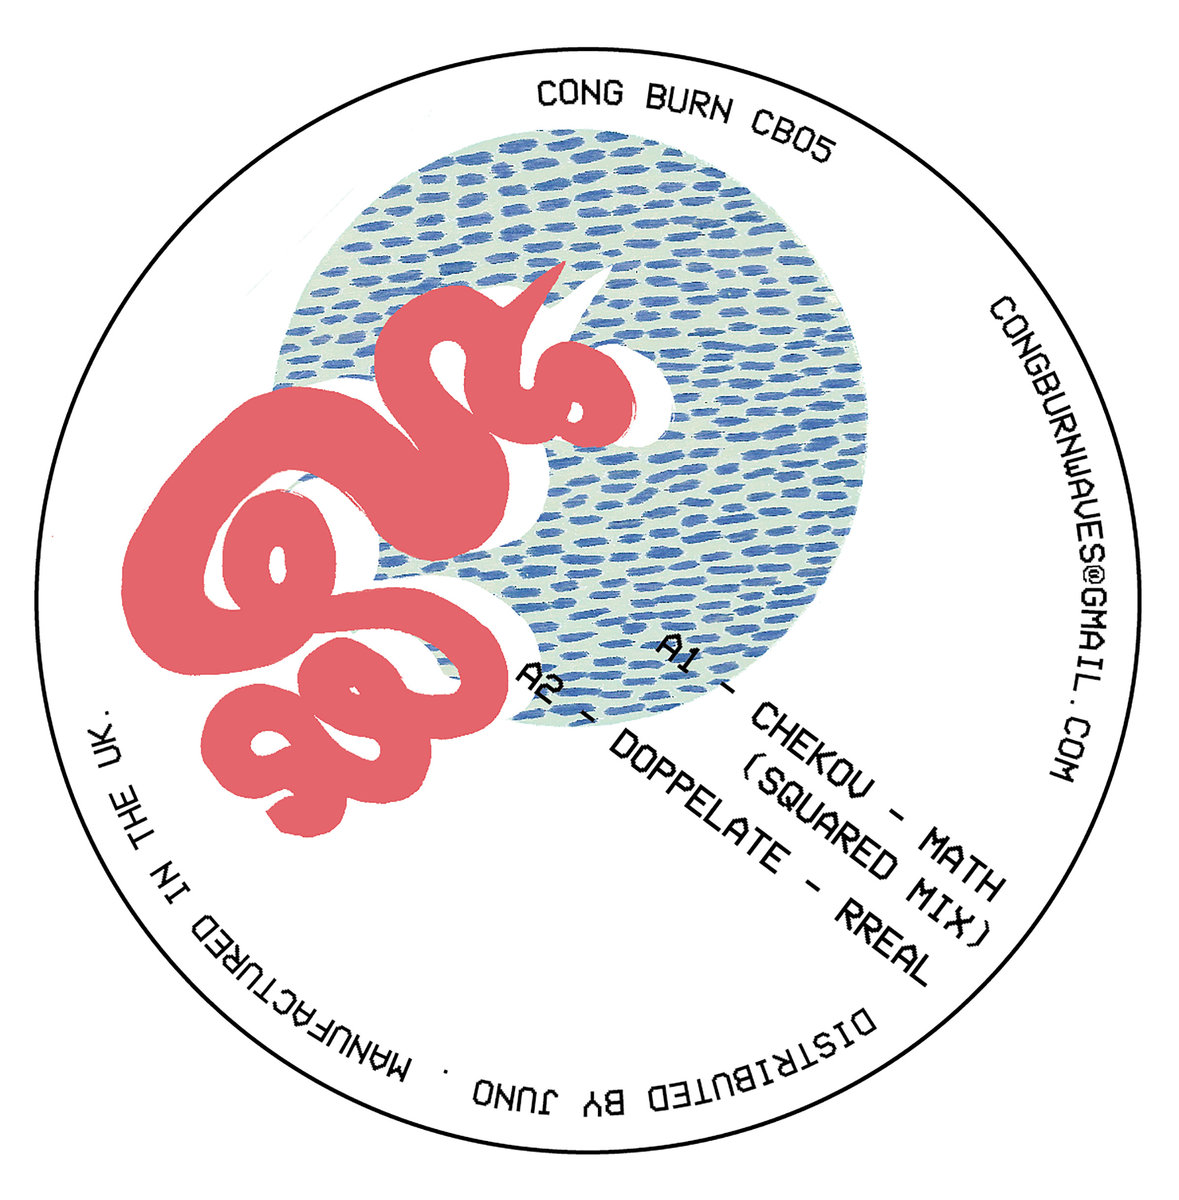 Chekov, Doppelate, Carmin and Howes feature on Cong Burn 05